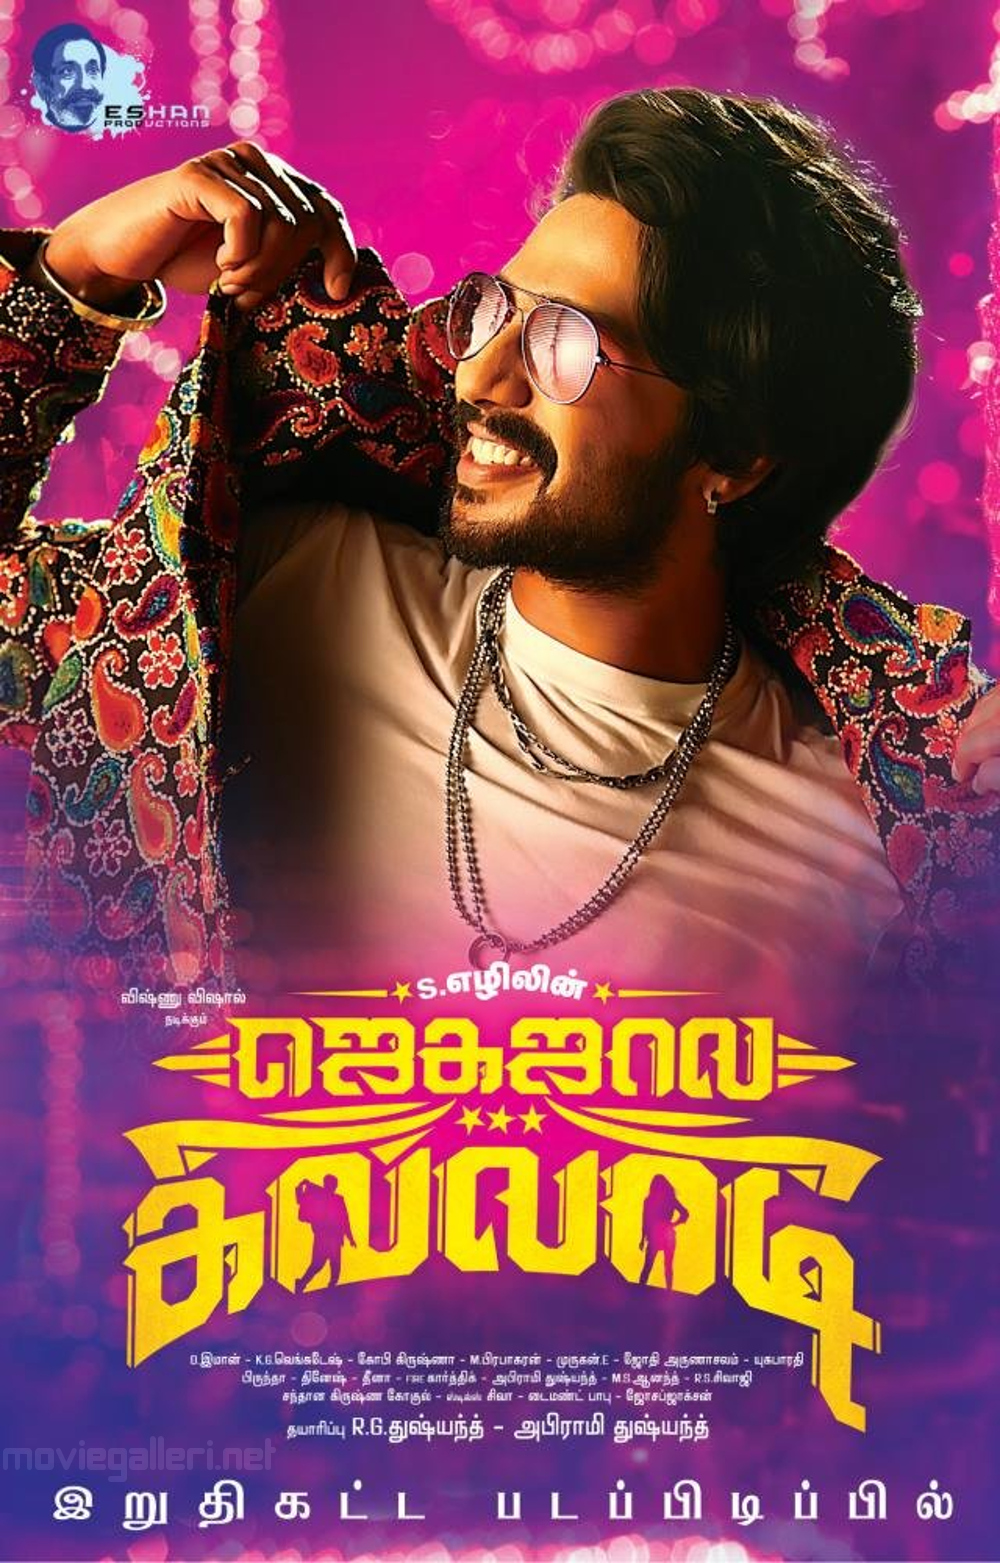 Actor Vishnu Vishal Jaga Jaala Killaadi First Look Poster